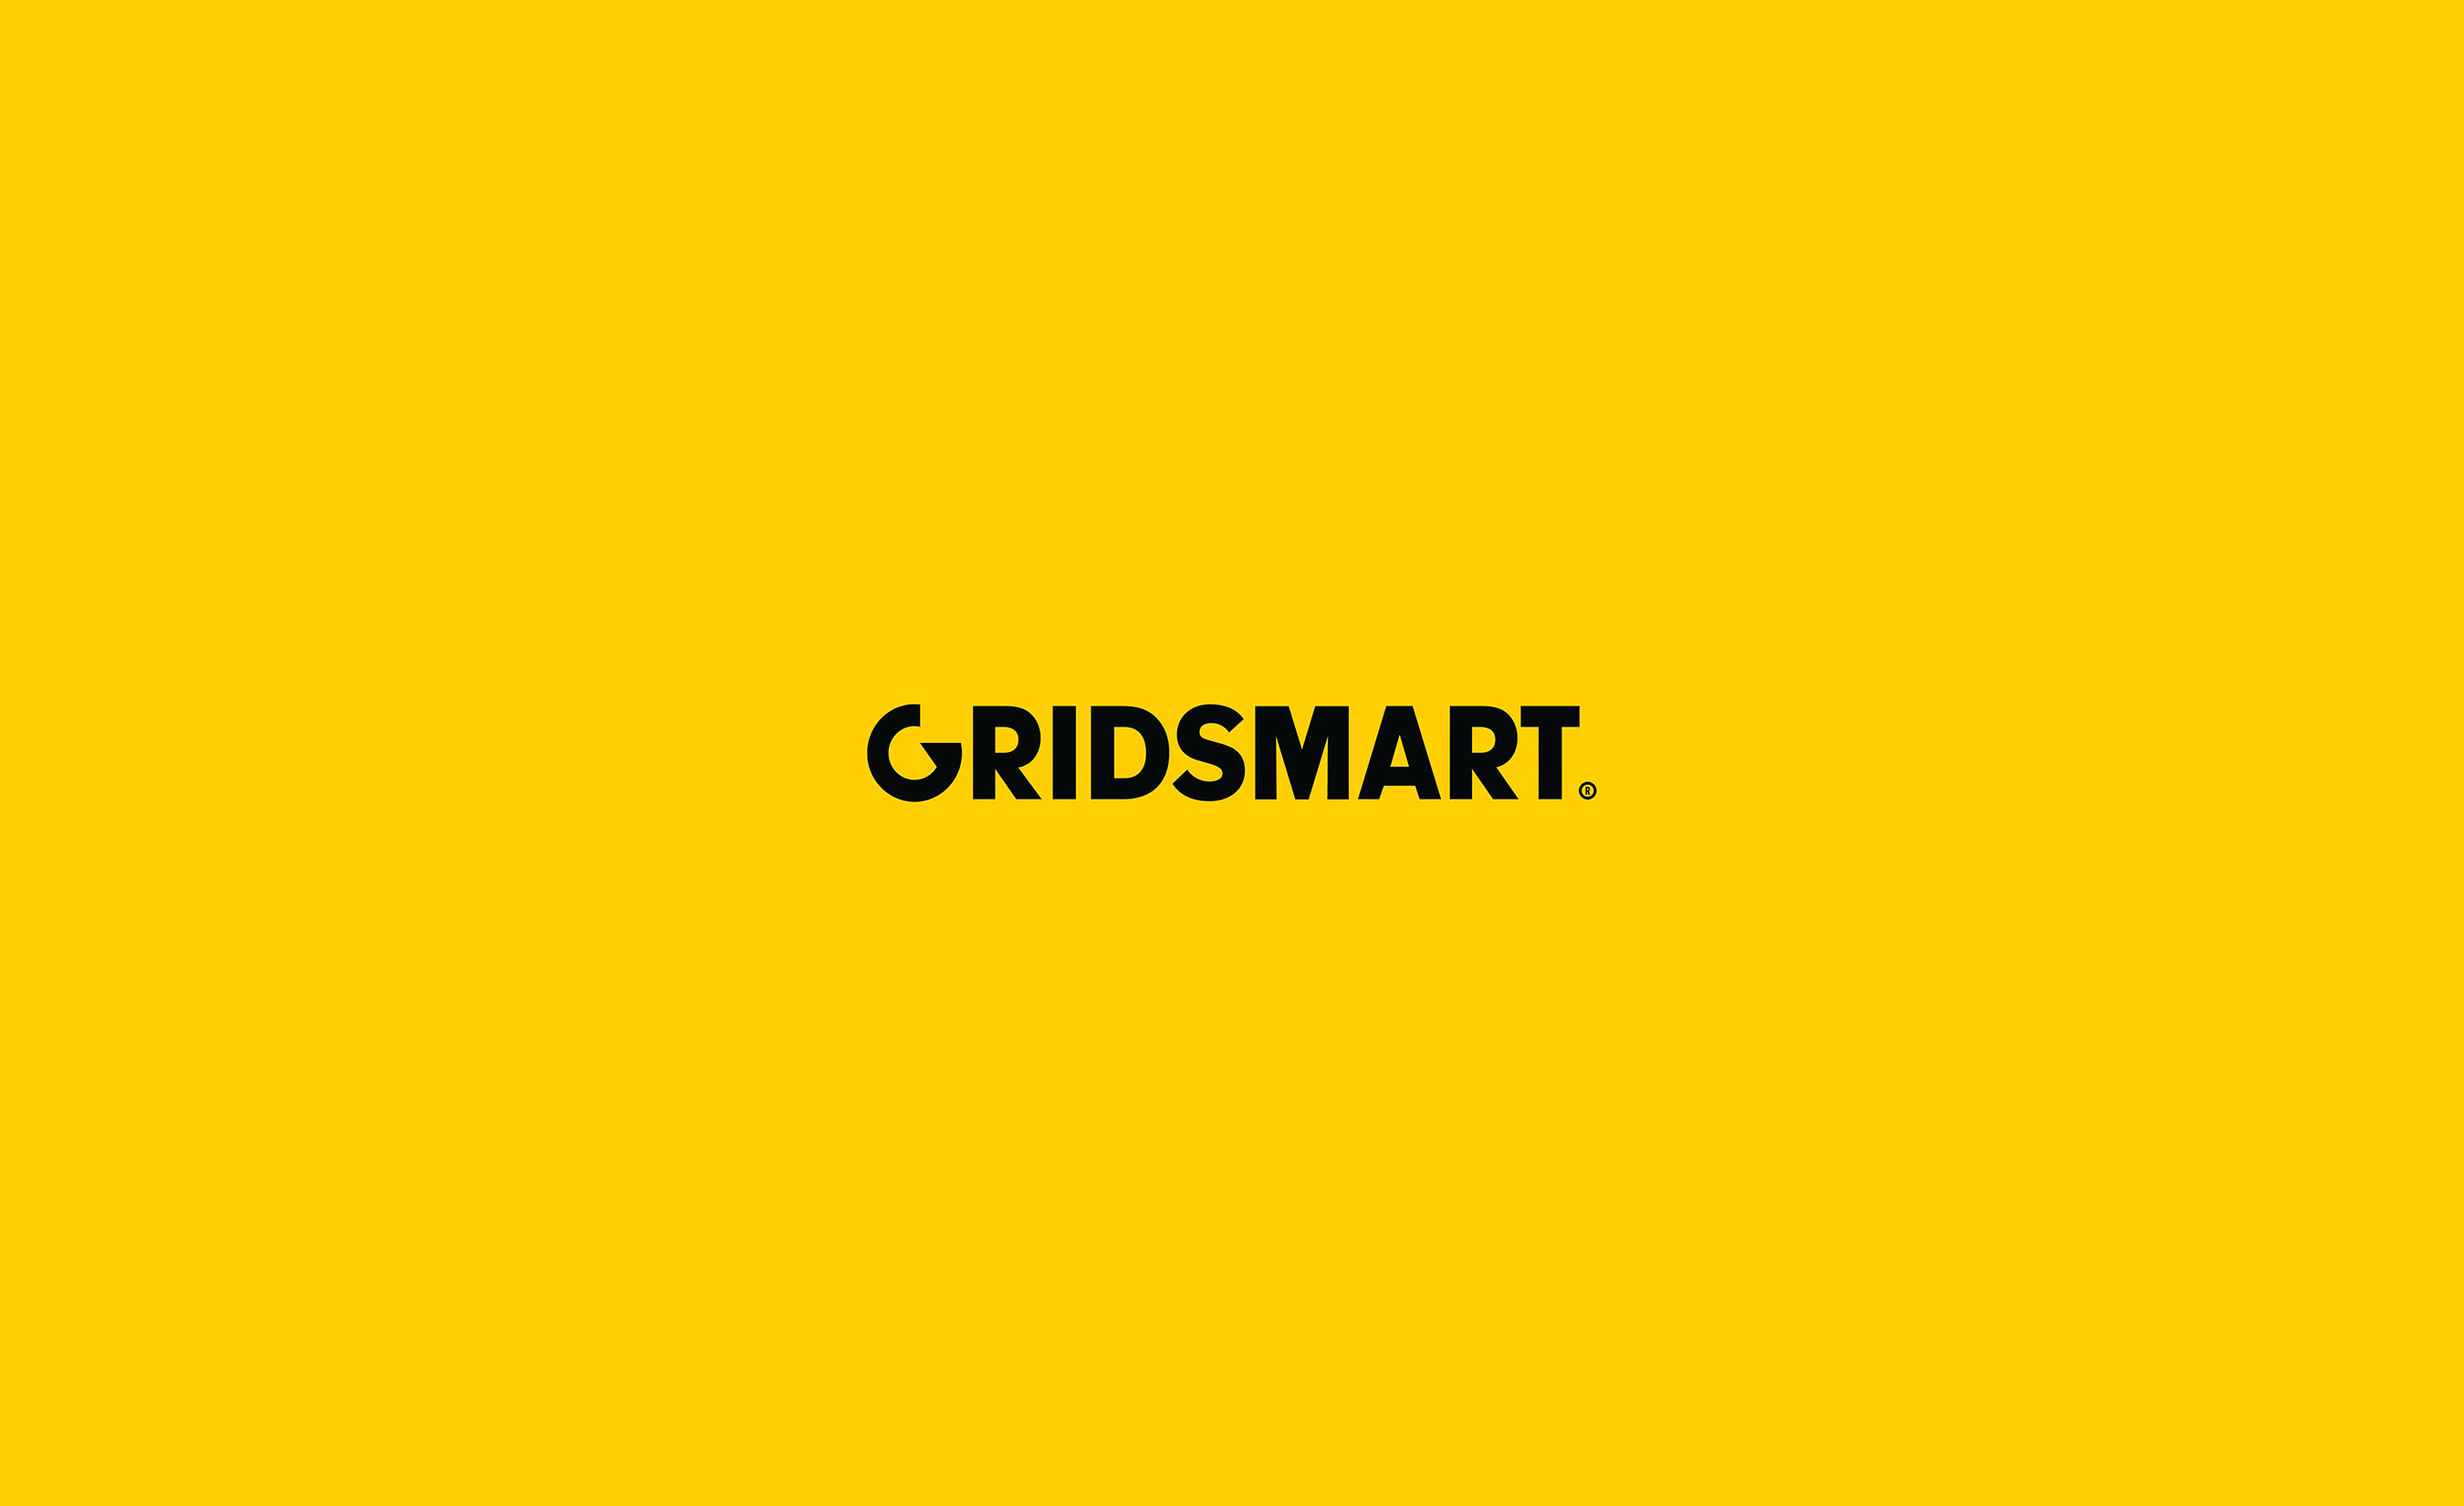 Gridsmart3_SM_april 12